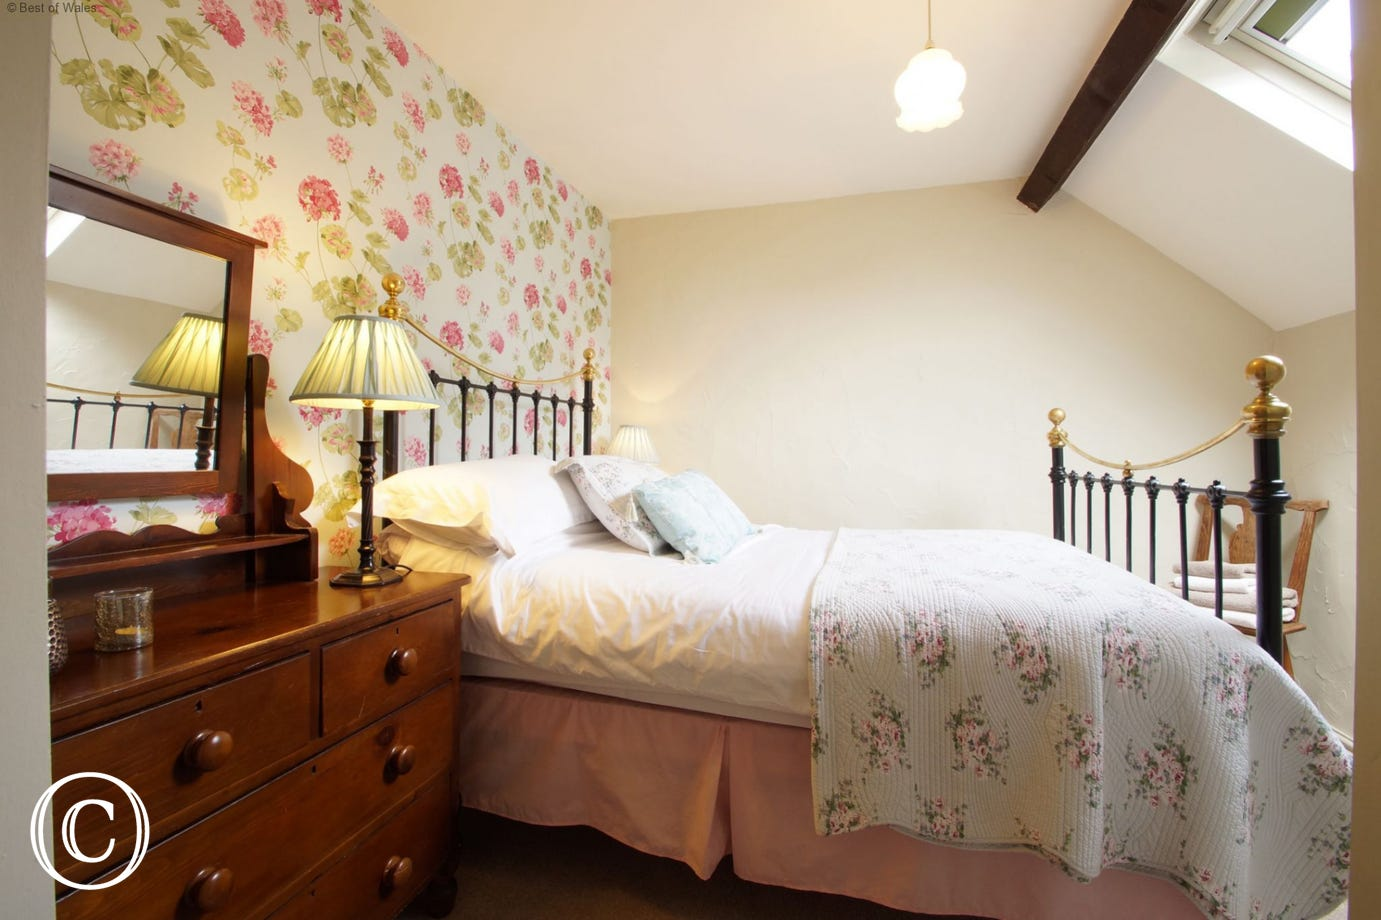 Self catering in North Wales - double bed with Egyptian Cotton bedding